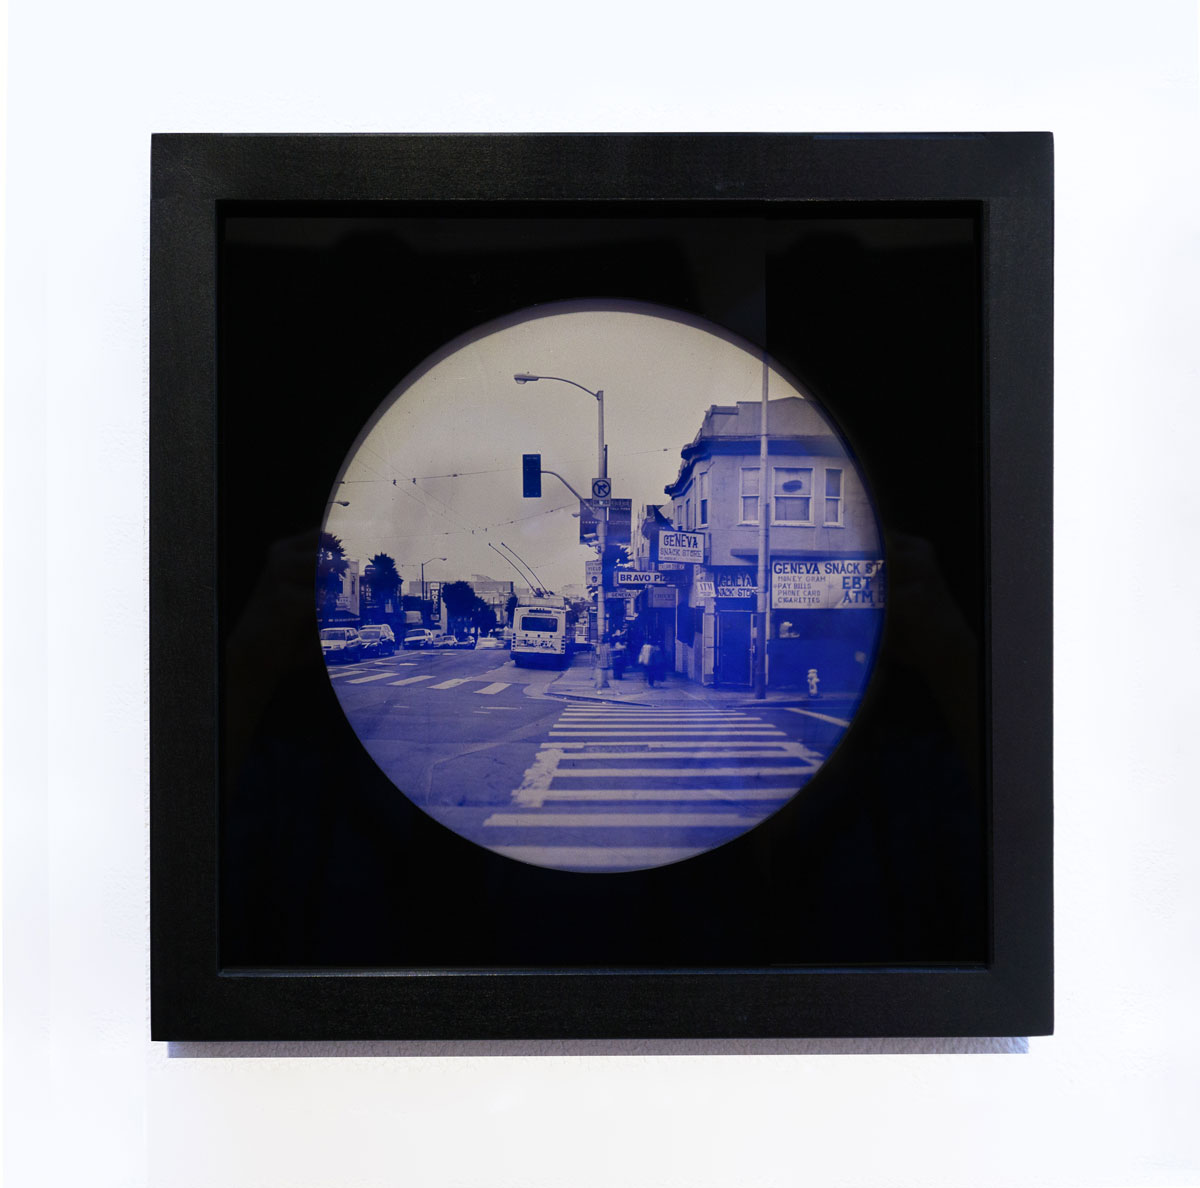 A round, blue-tinted photograph of the corer of Mission St. and Geneva Avenue in the Excelsior neighborhood of San Francisco.